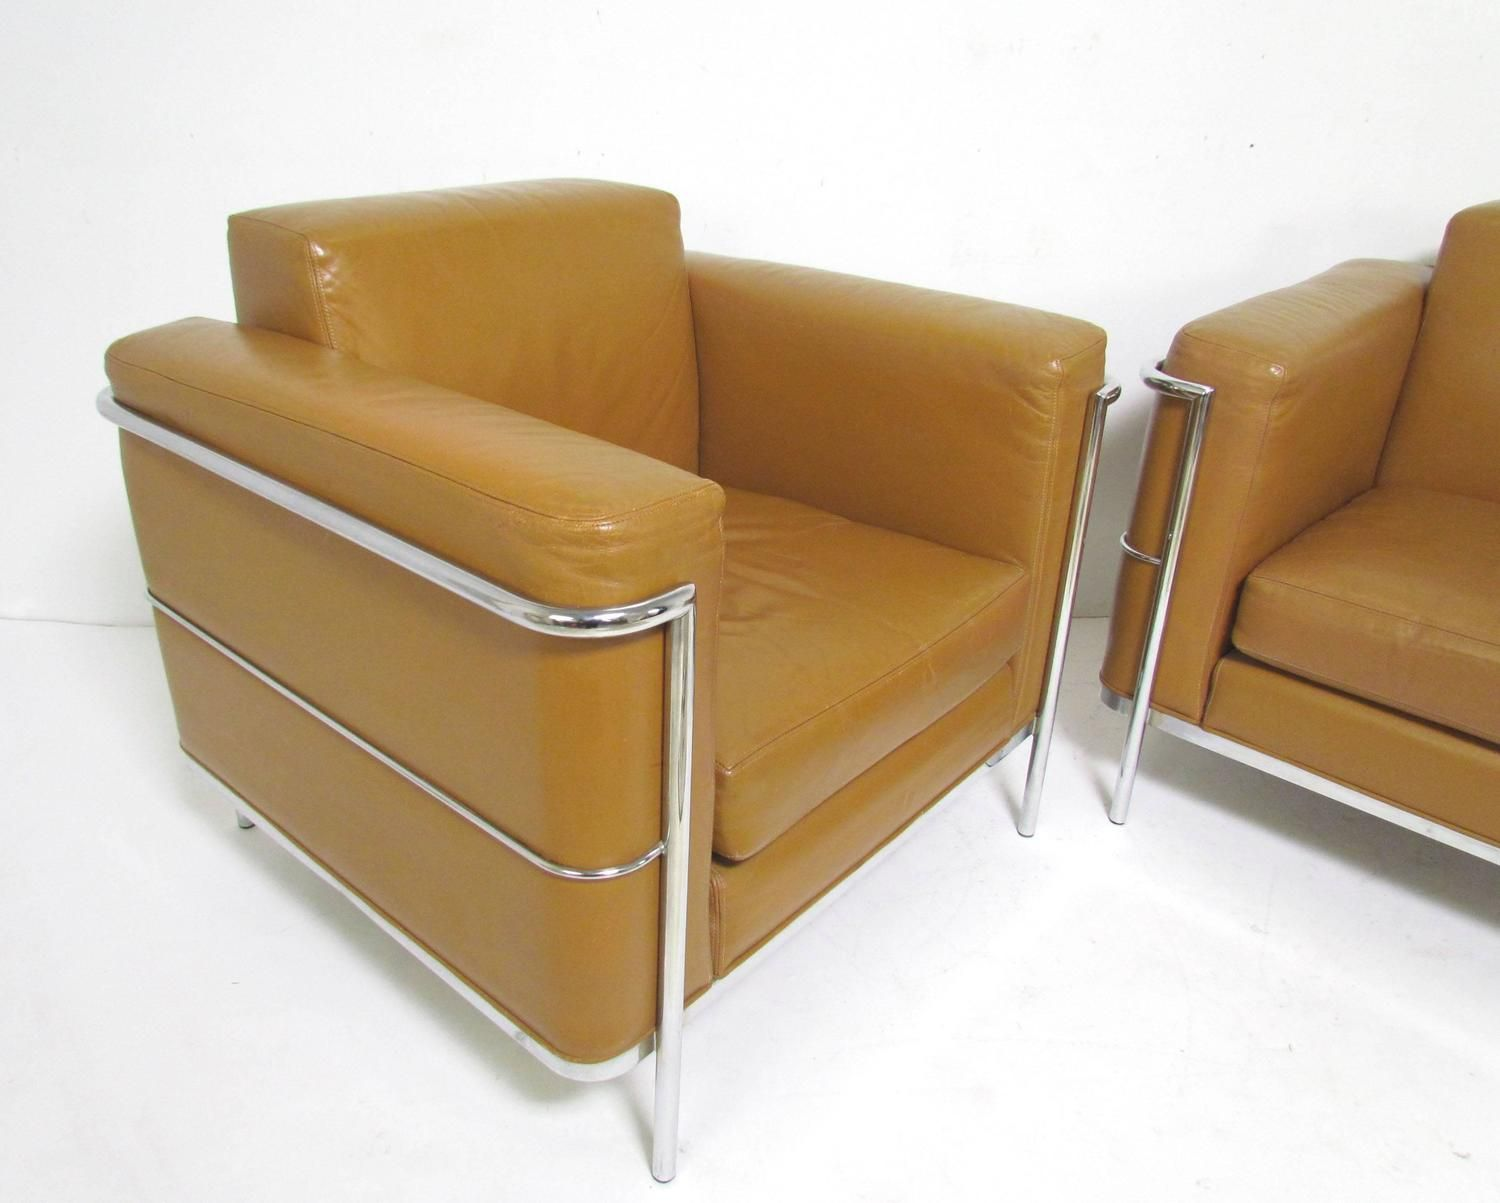 Incroyable Pair Of Leather Lounge Chairs By Jack Cartwright In Manner Of Le Corbusier 2